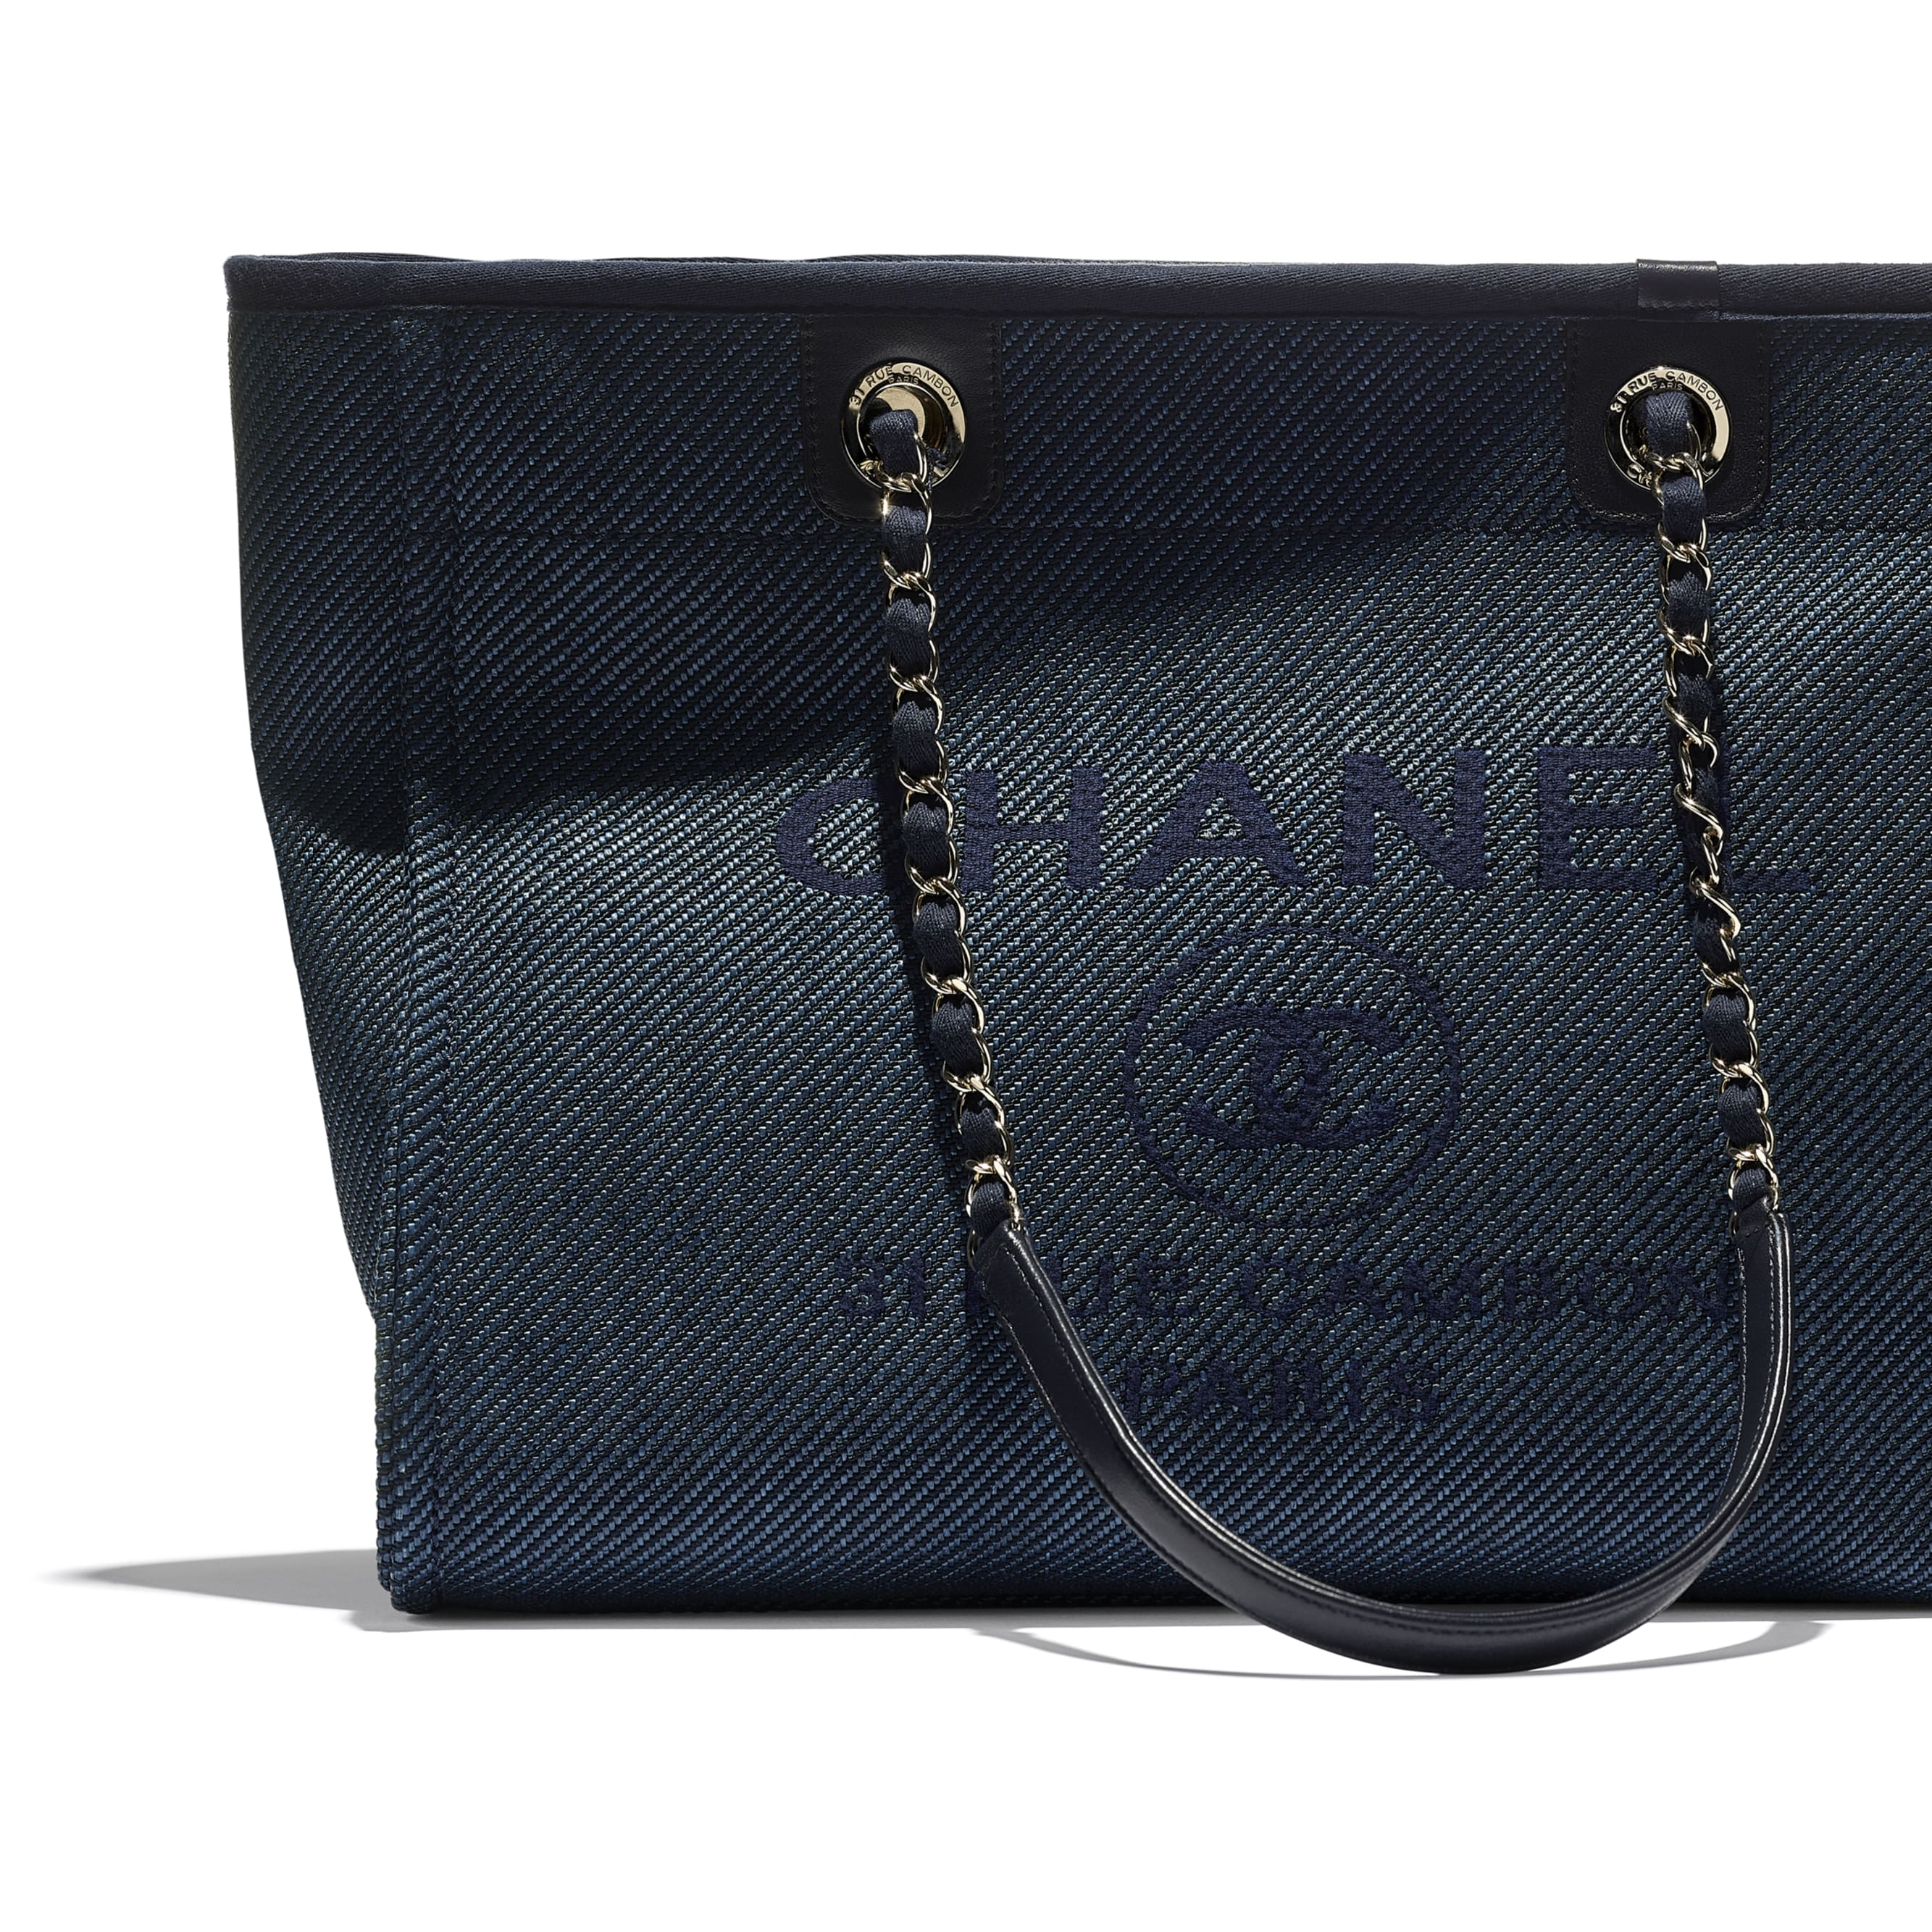 Large Tote - Navy Blue - Mixed Fibres, Calfskin & Gold-Tone Metal - CHANEL - Extra view - see standard sized version